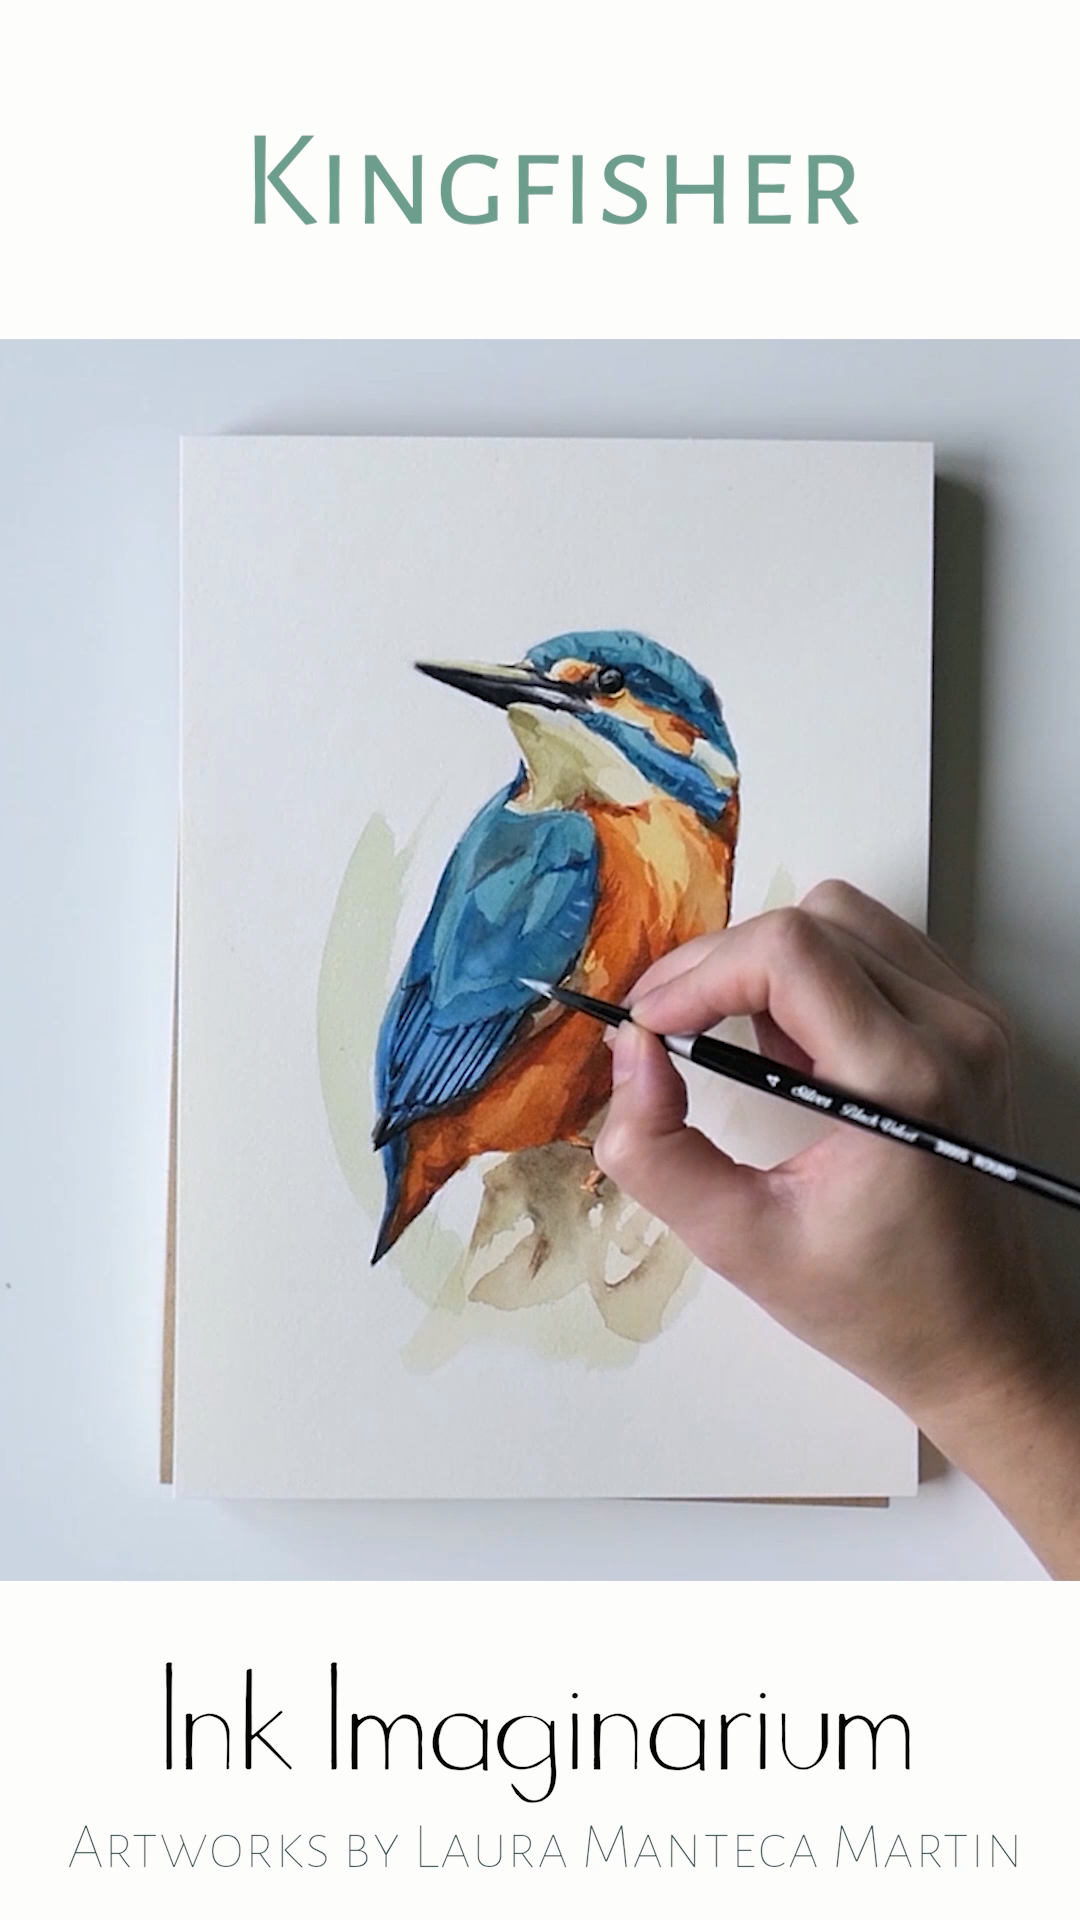 Do you love little colorful birds and the magic of watercolor? At Ink Imaginarium blog you can find all the videos of the last collection, a series of exotic birds inspired by tropical vibes and nature, including this little Kingfisher. All the original watercolor paintings are created by the visual artist Laura Manteca Martin. #tropicalbirds #exoticbirds #colorfulbirds #birdlovers #broadbill #paintingprocess #paintingvideo #watercolor #watercolorlove